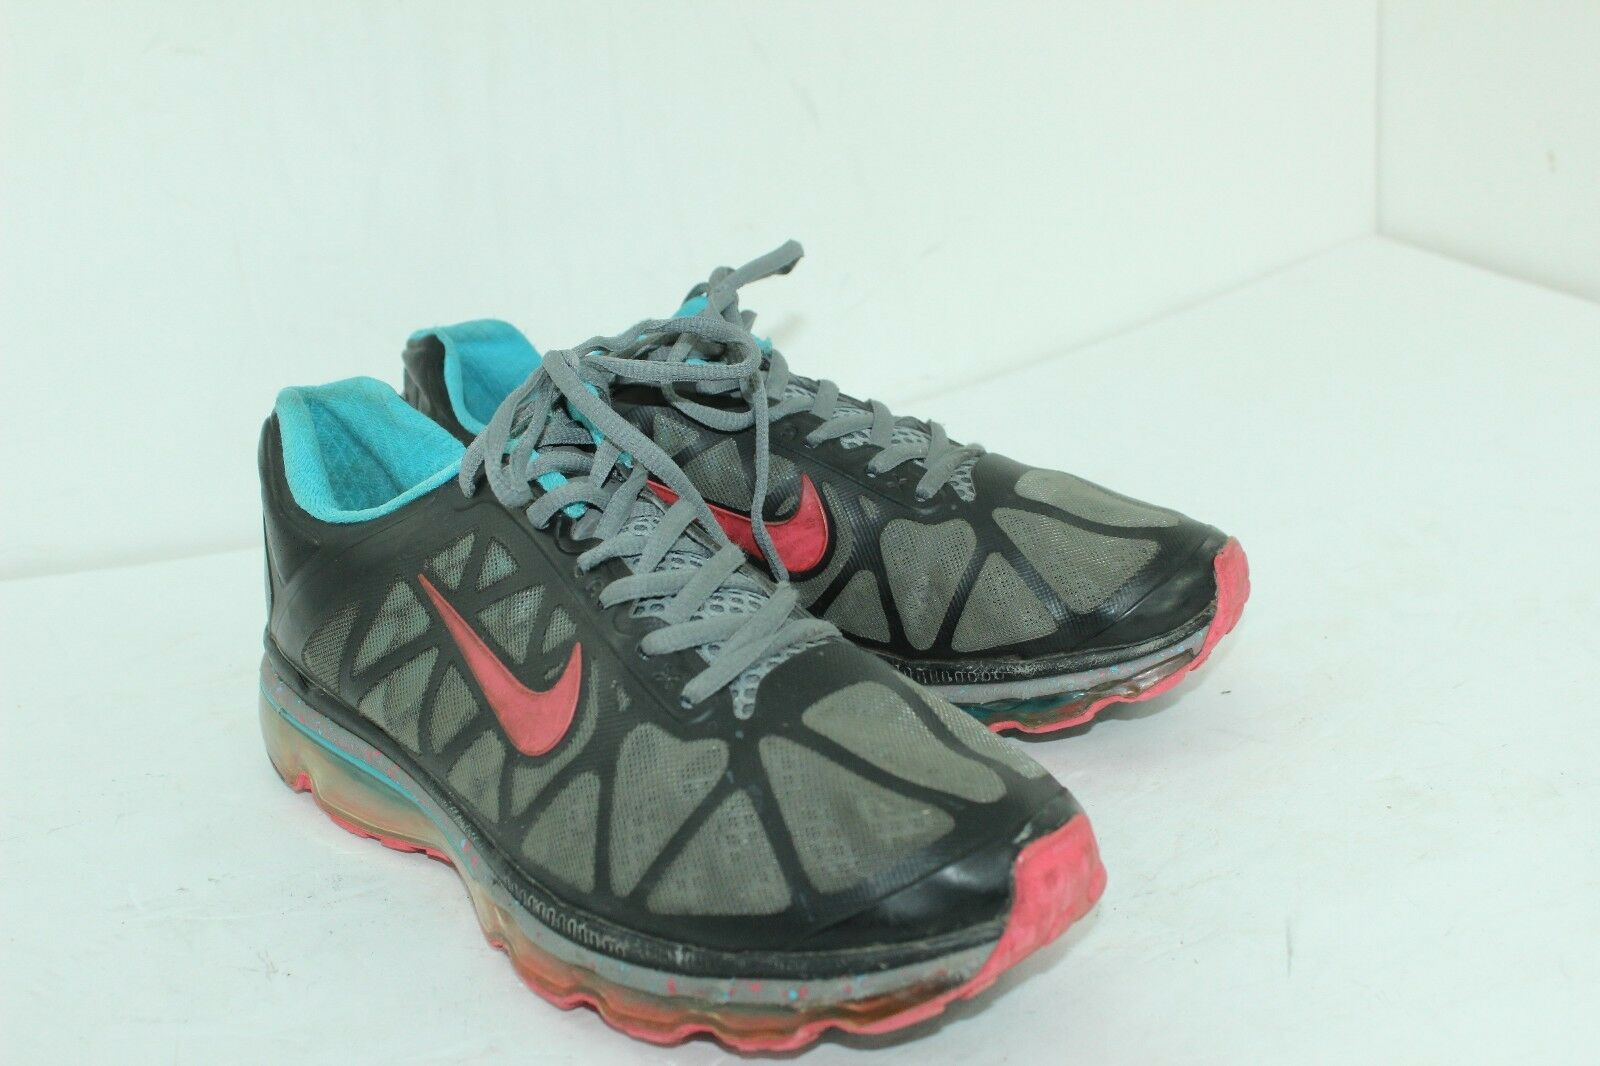 NIKE AIRMAX SIZE 8.5 MENS IN GOOD CONDITION AIR CHAMBER IS GOOD The most popular shoes for men and women